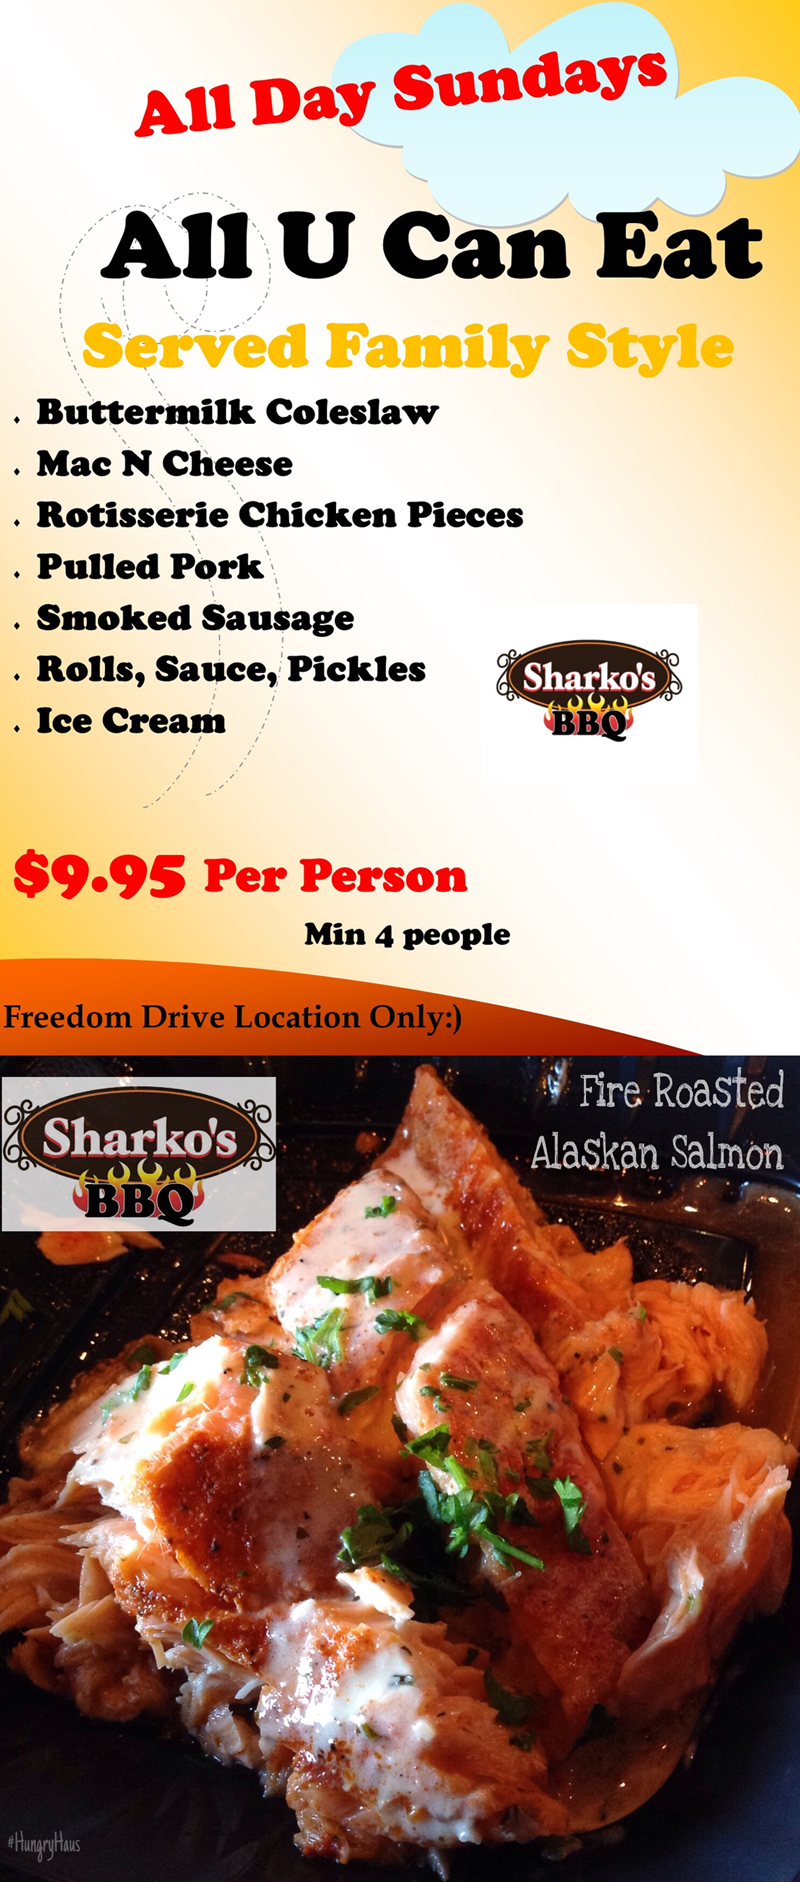 Specials Every Week!